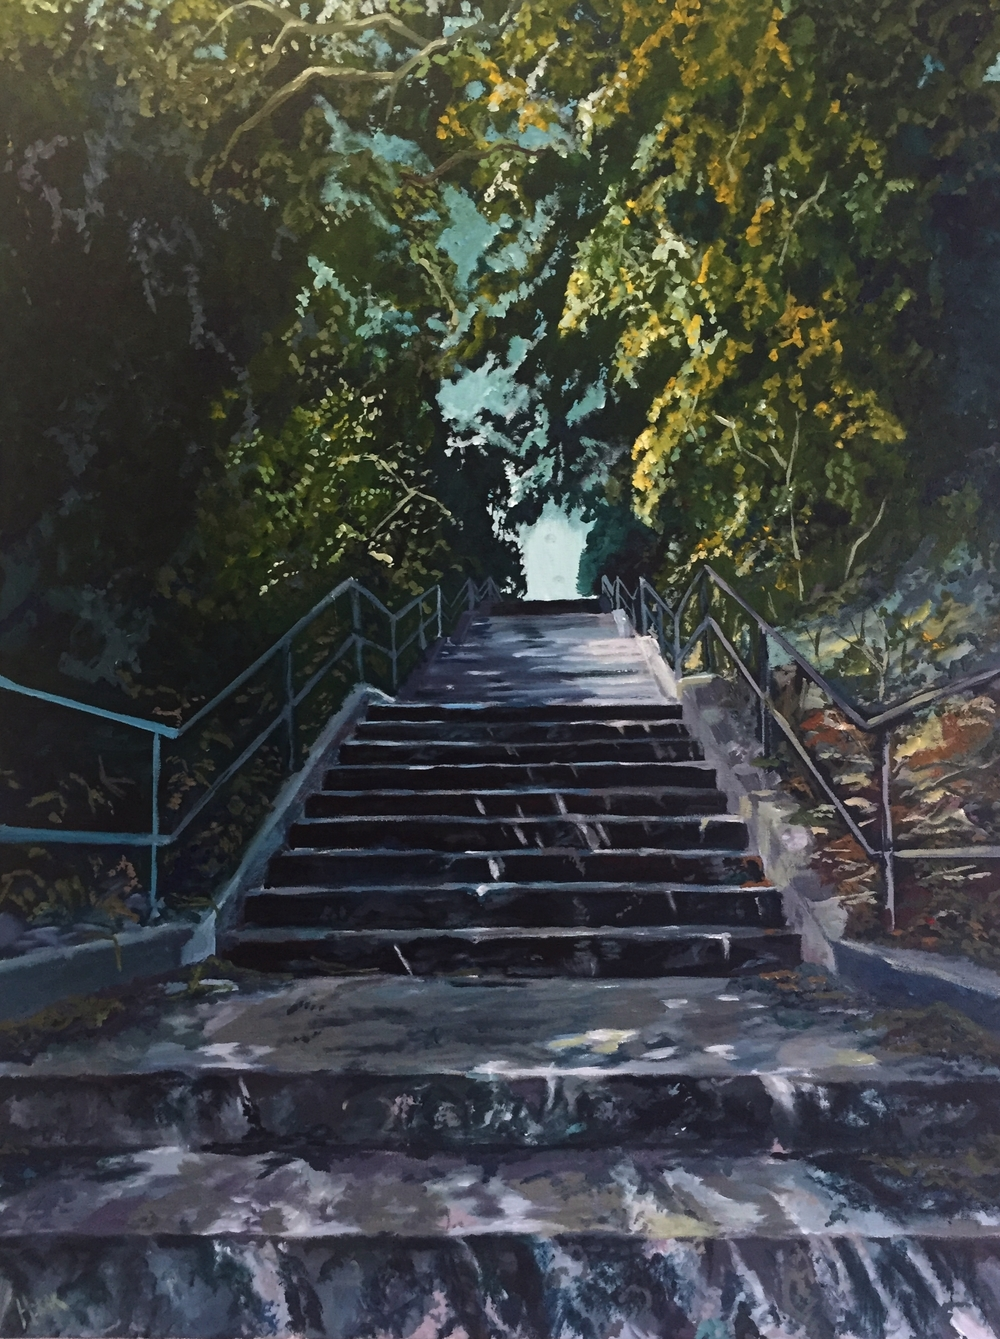 Staircase to Regal Road